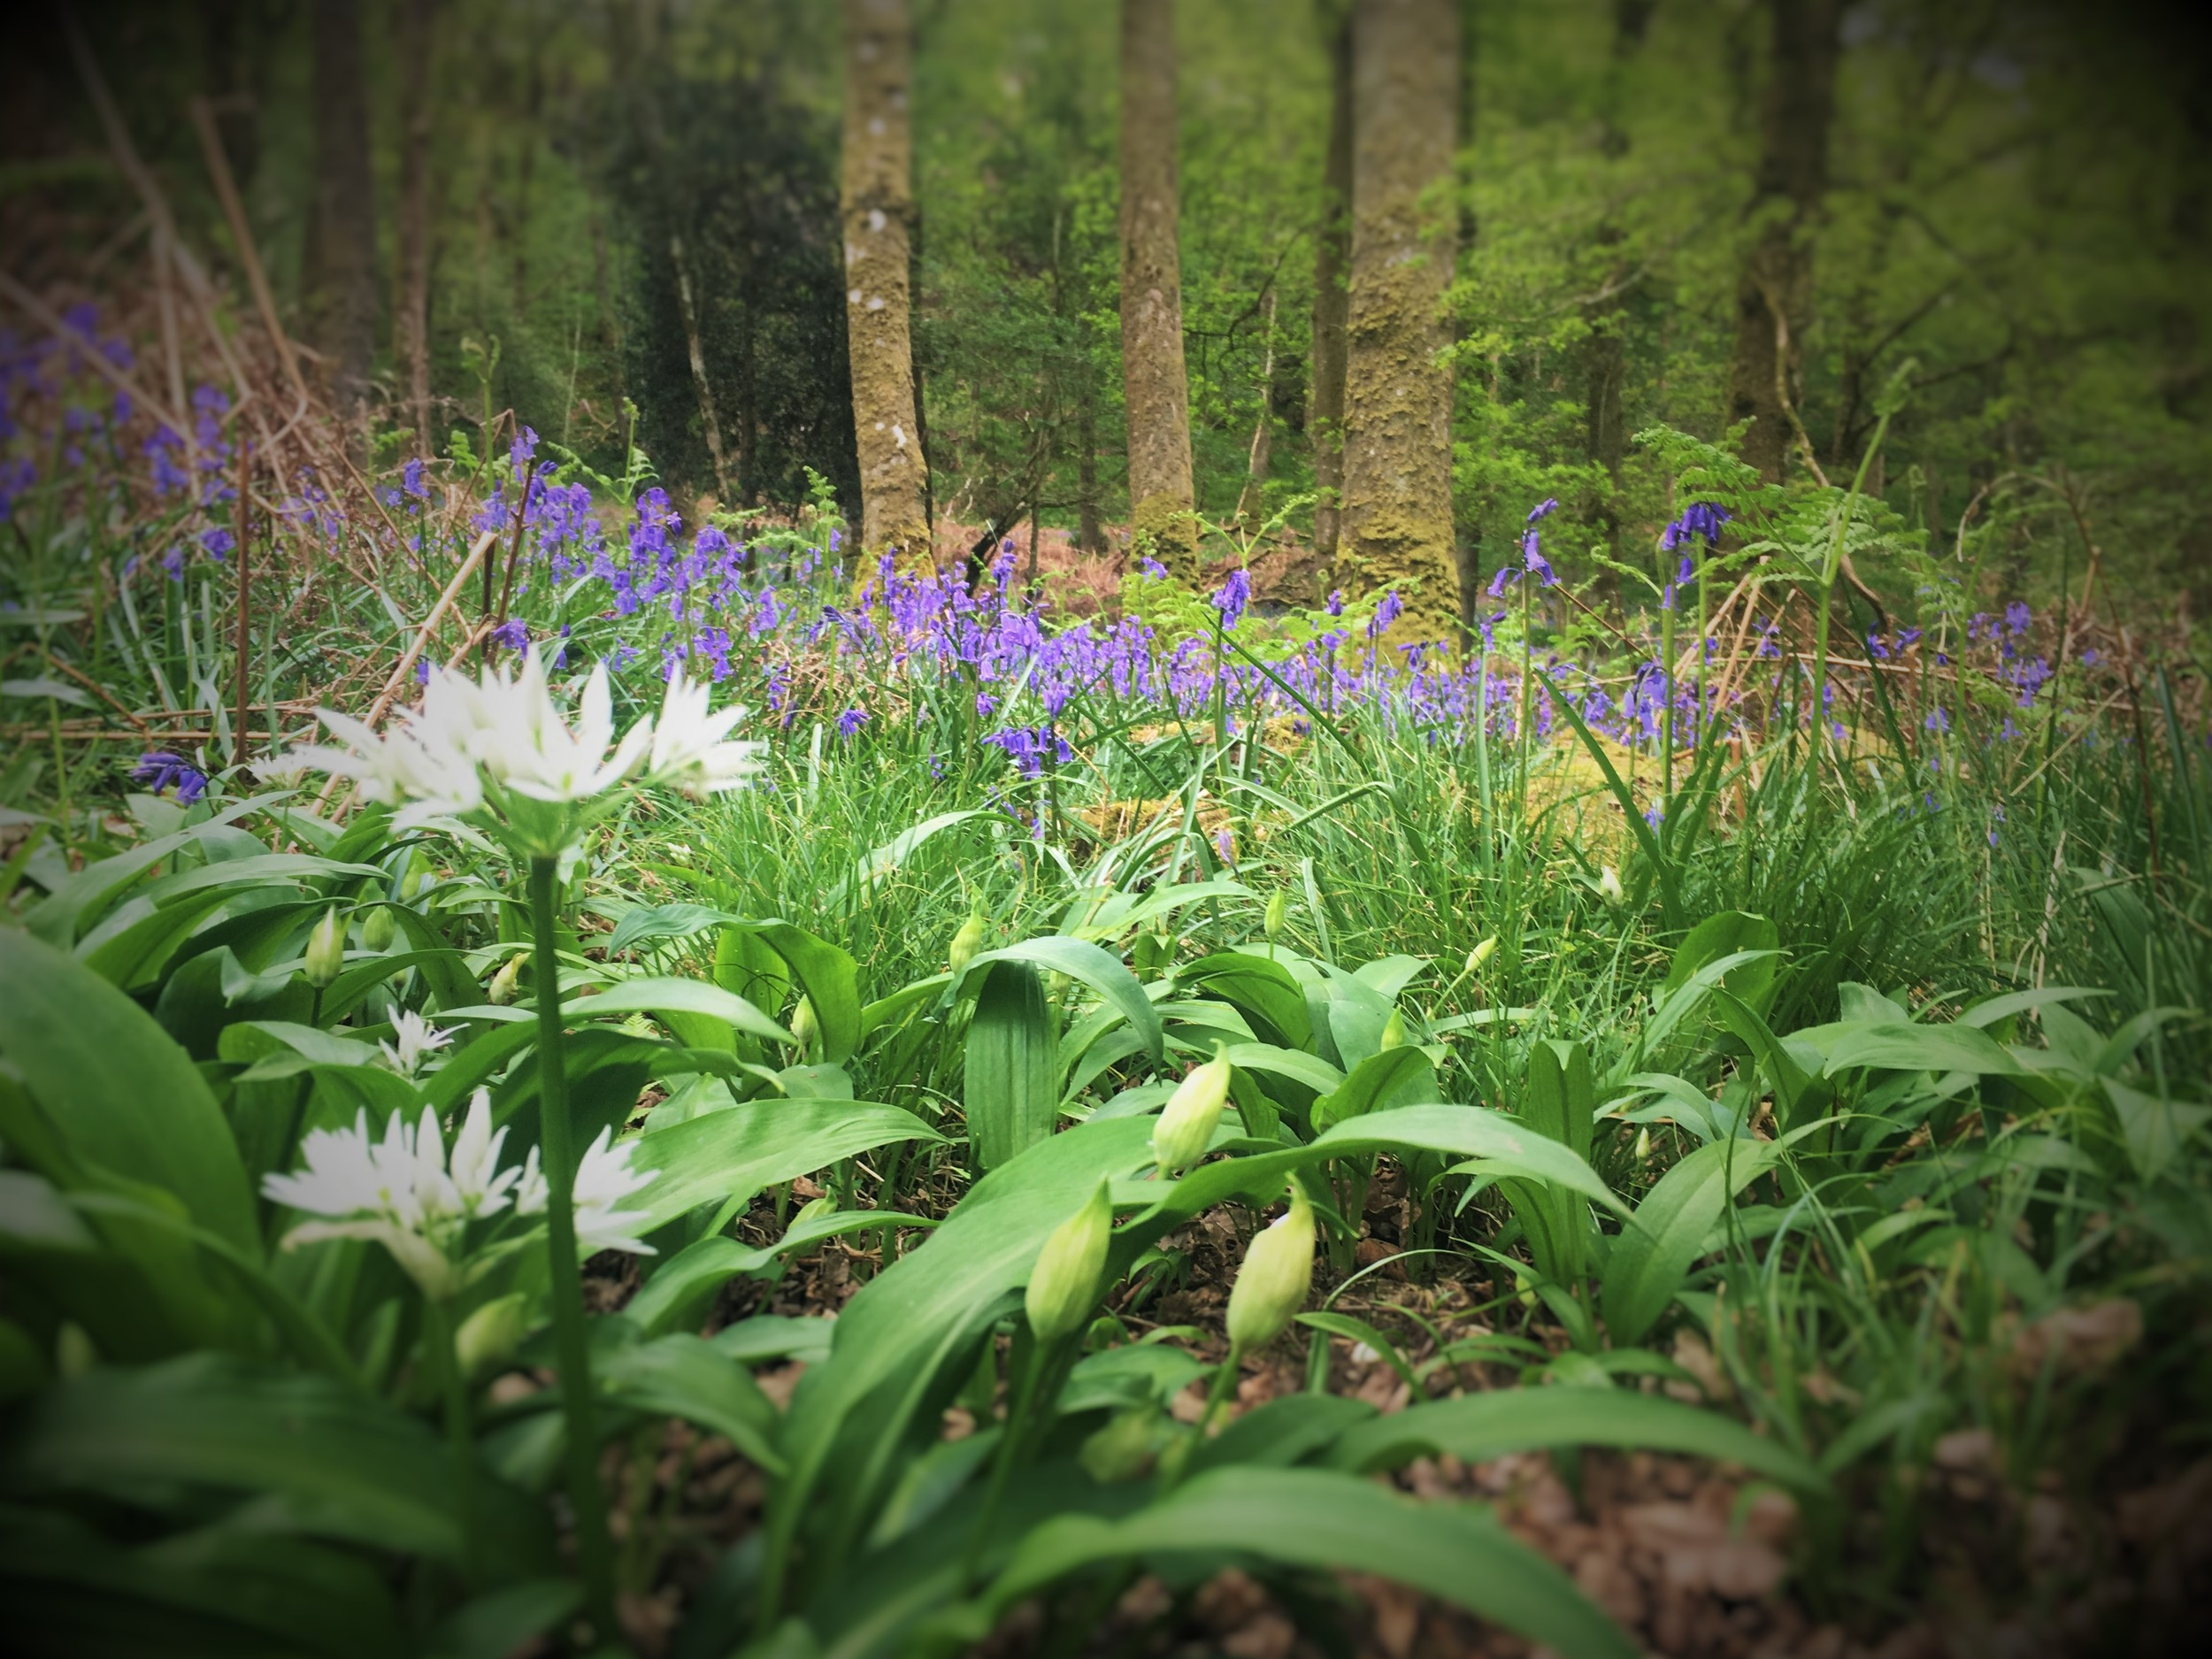 Inchcailloch Nature reserve fills up with lovely Bluebells and wild Garlic in Spring. The Garlic you can smell long before you see and the Bluebells you can see long before you reach them.   Inchcailloch is also home to bats which have taken up residence in the local National Park Ranger base.